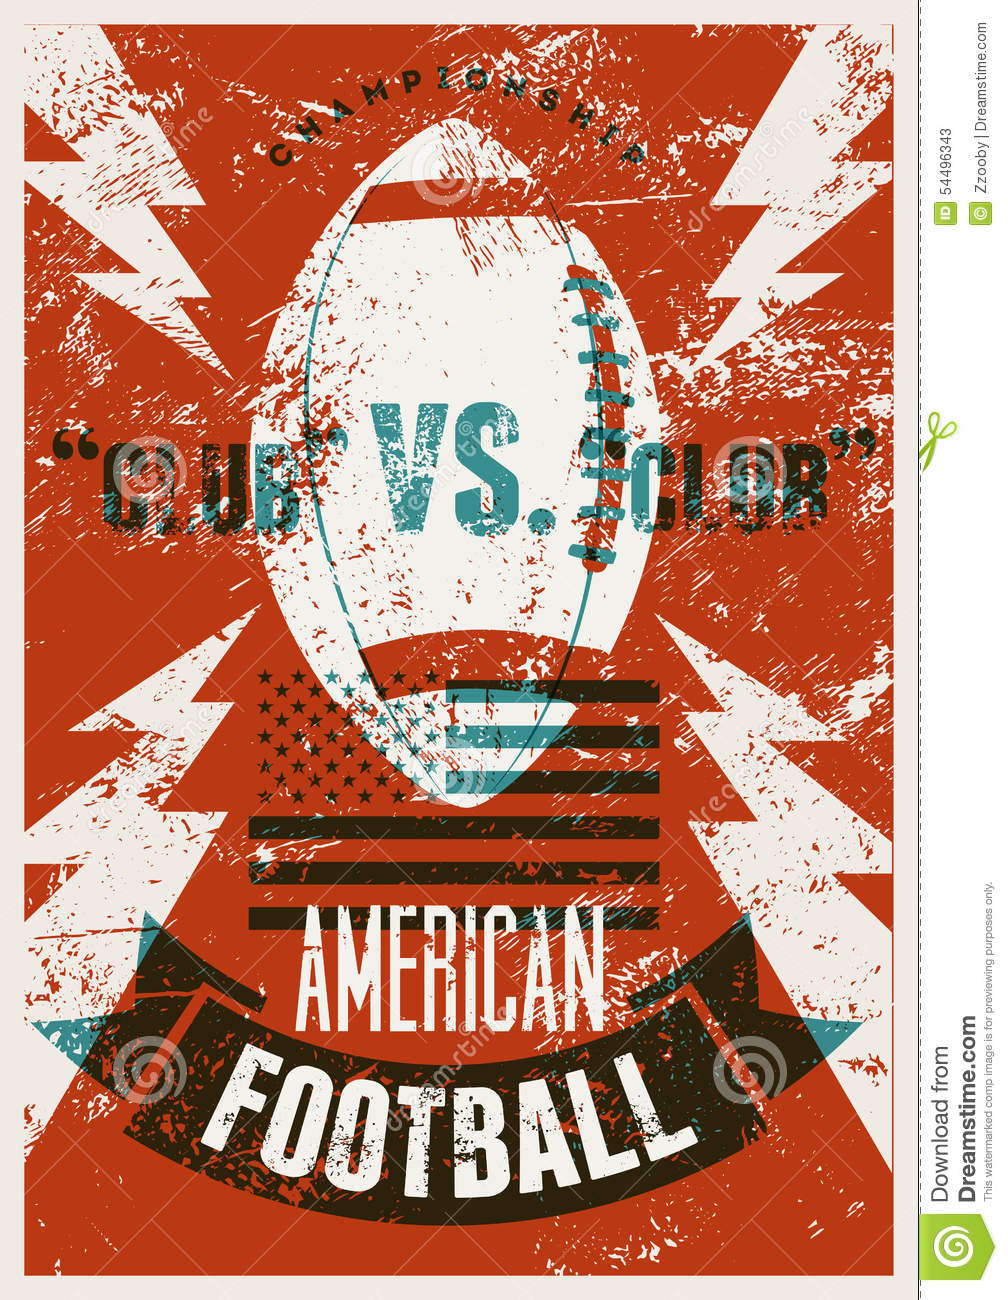 GREAT video! vintage football poster